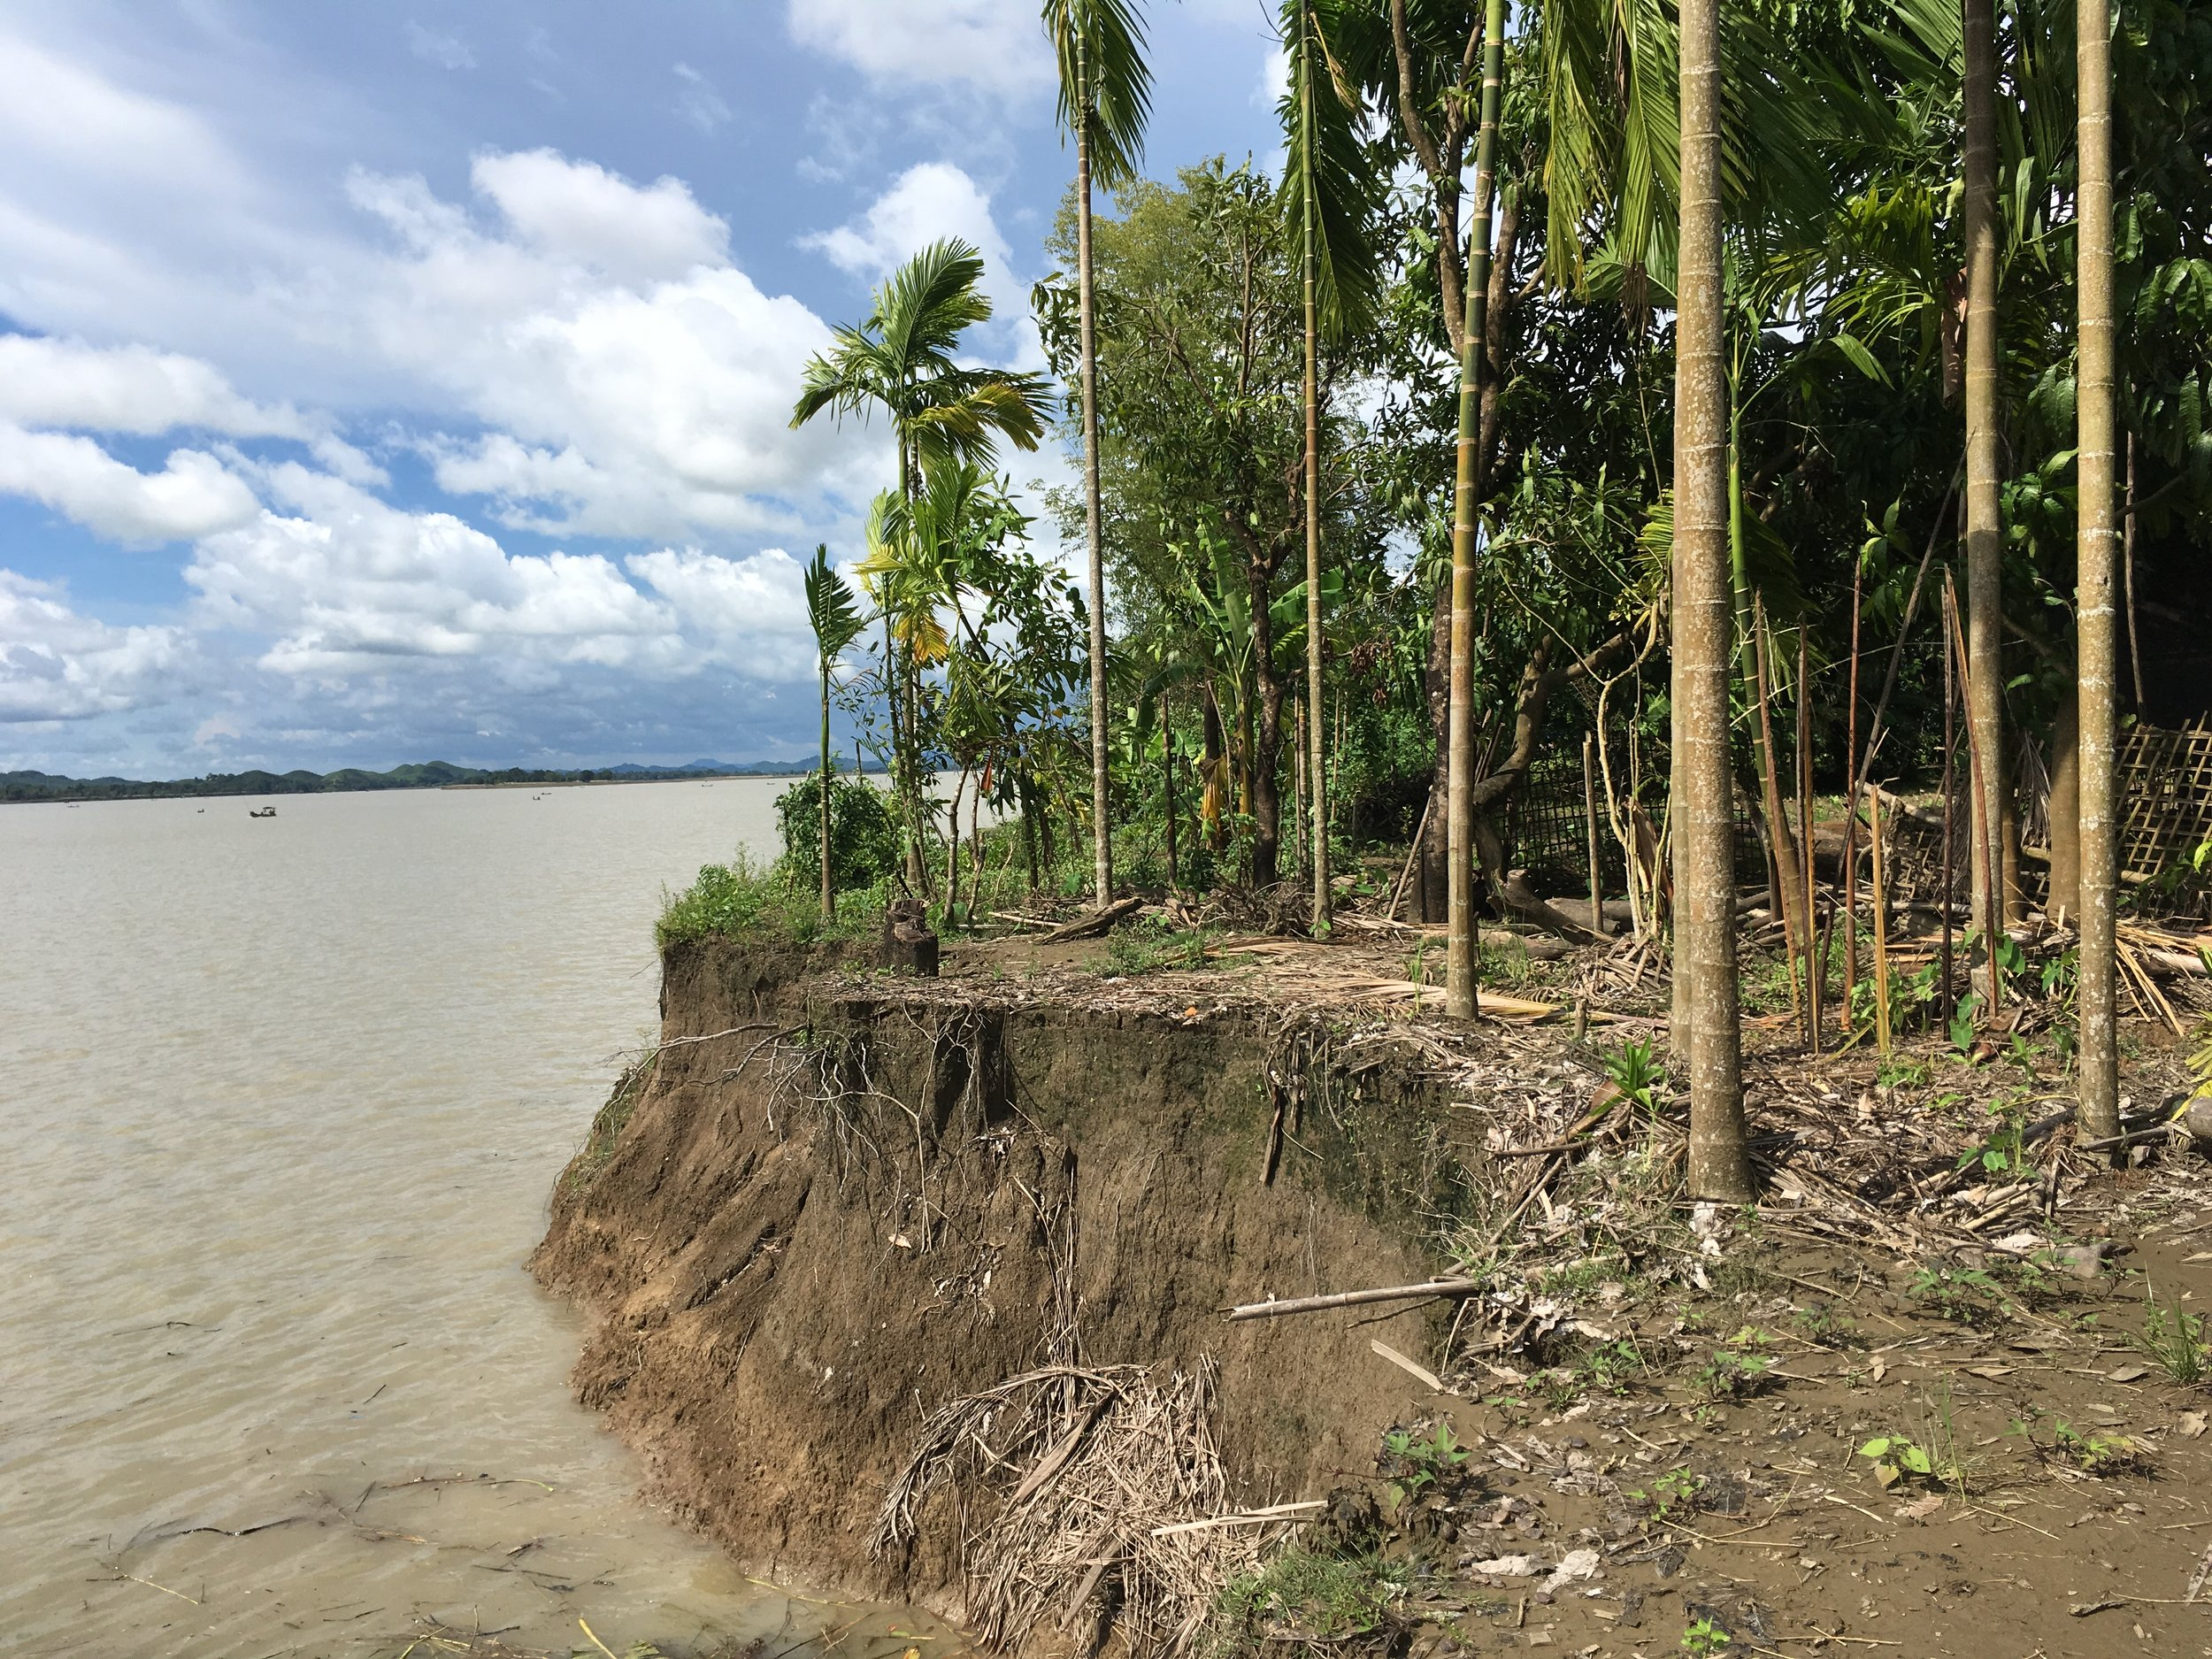 Before the 2015 floods and landslides, villagers living on the river bank in Hla Ta village in Mimbya, Rakhine State, used to grow crops and tend to a scattering of animals around their basic bamboo huts. The 2015 floods and landslides caused a 40-foot strip of land along the river bank to fall into the water, taking with it shelters, animals, and crops. Many villagers have now had to take out loans to feed their families. In the context where poor, rural villagers in Myanmar are often already heavily indebted, this is particularly concerning.